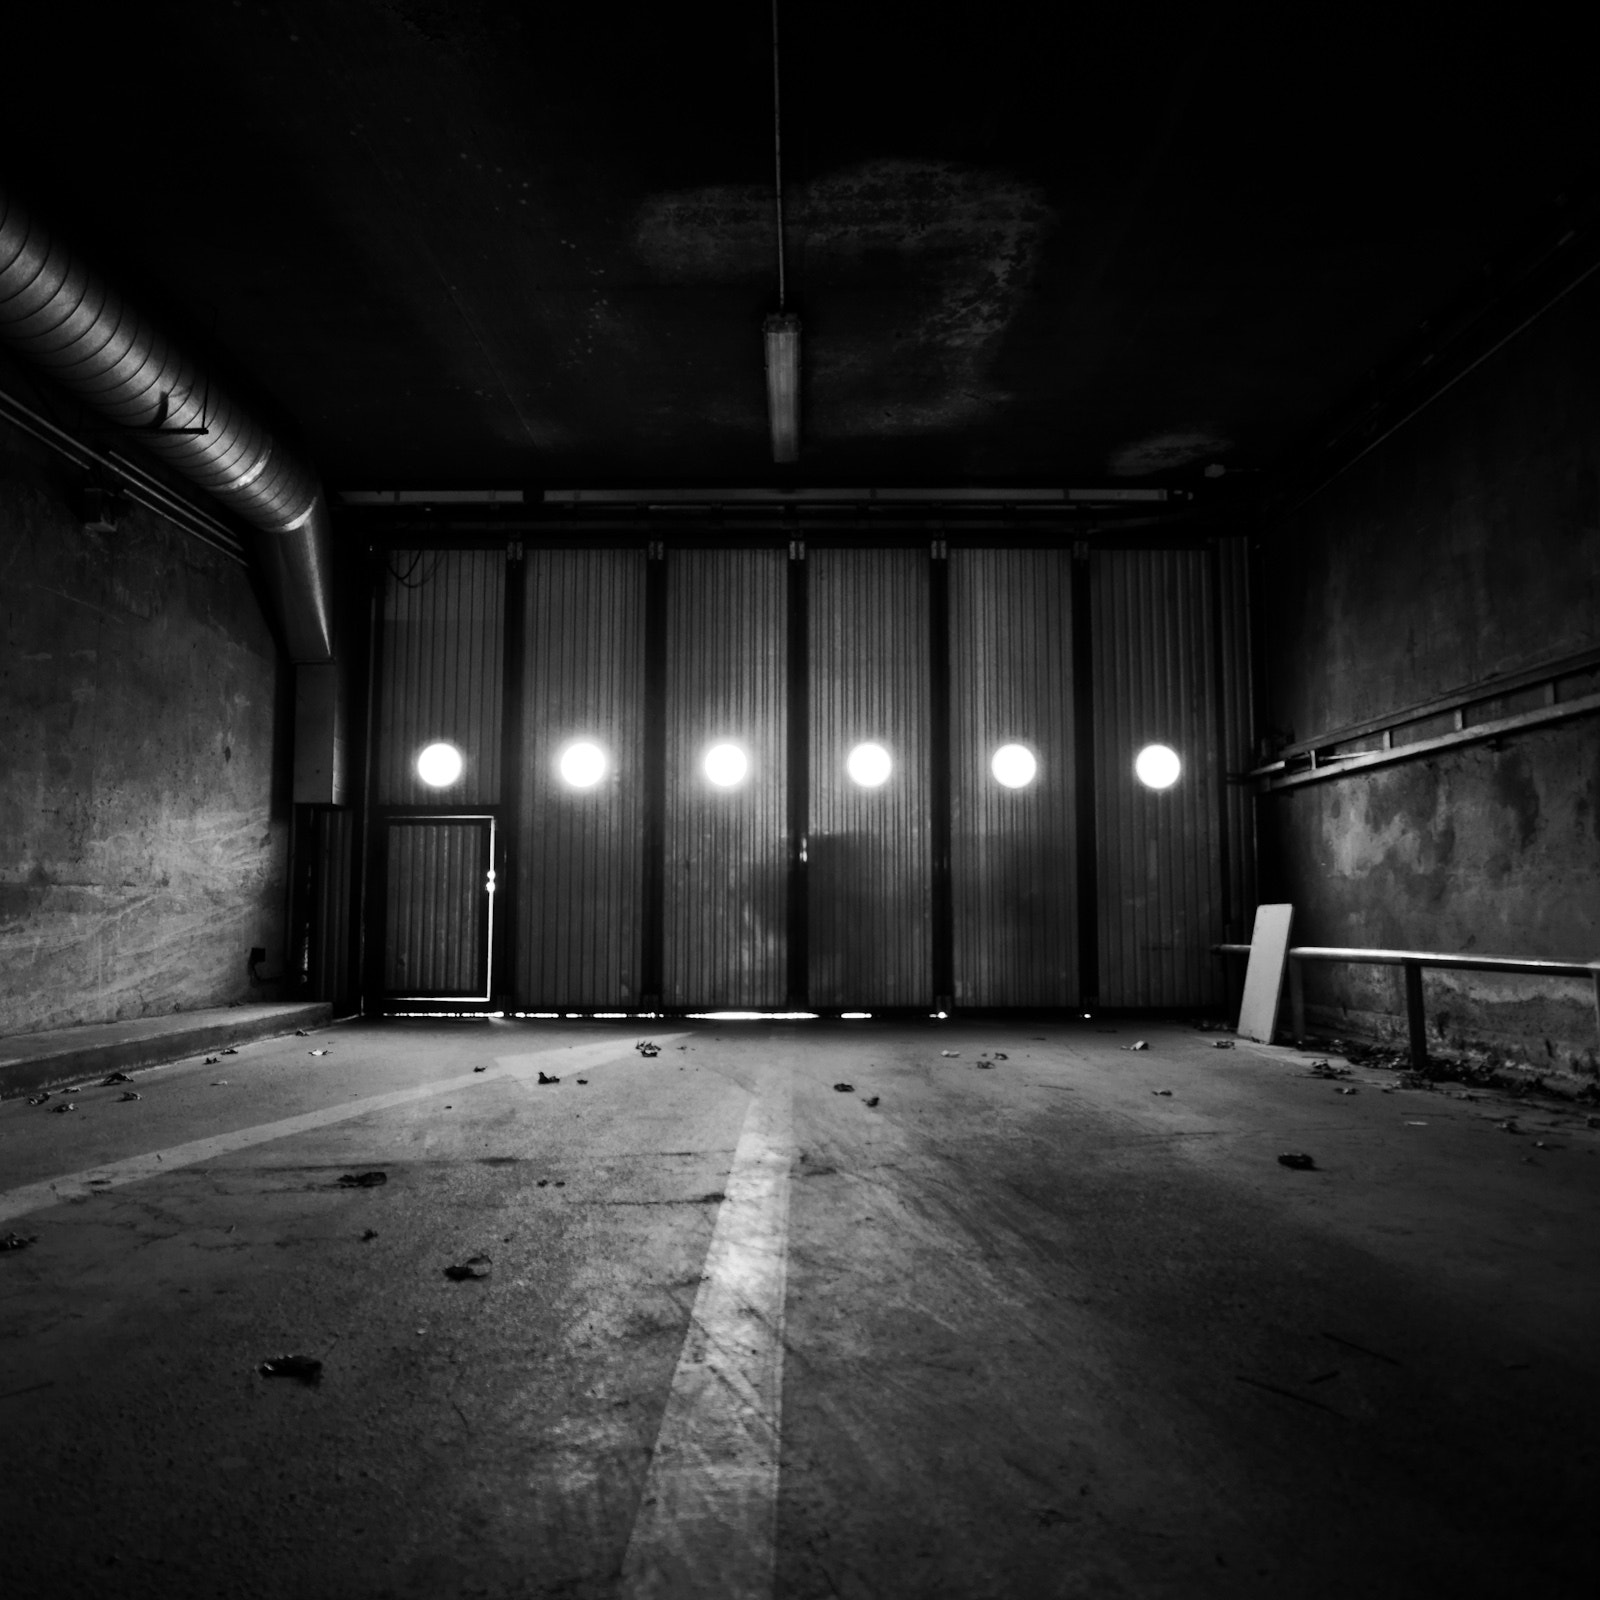 Photograph Emergency Room by Giulio Provasi on 500px